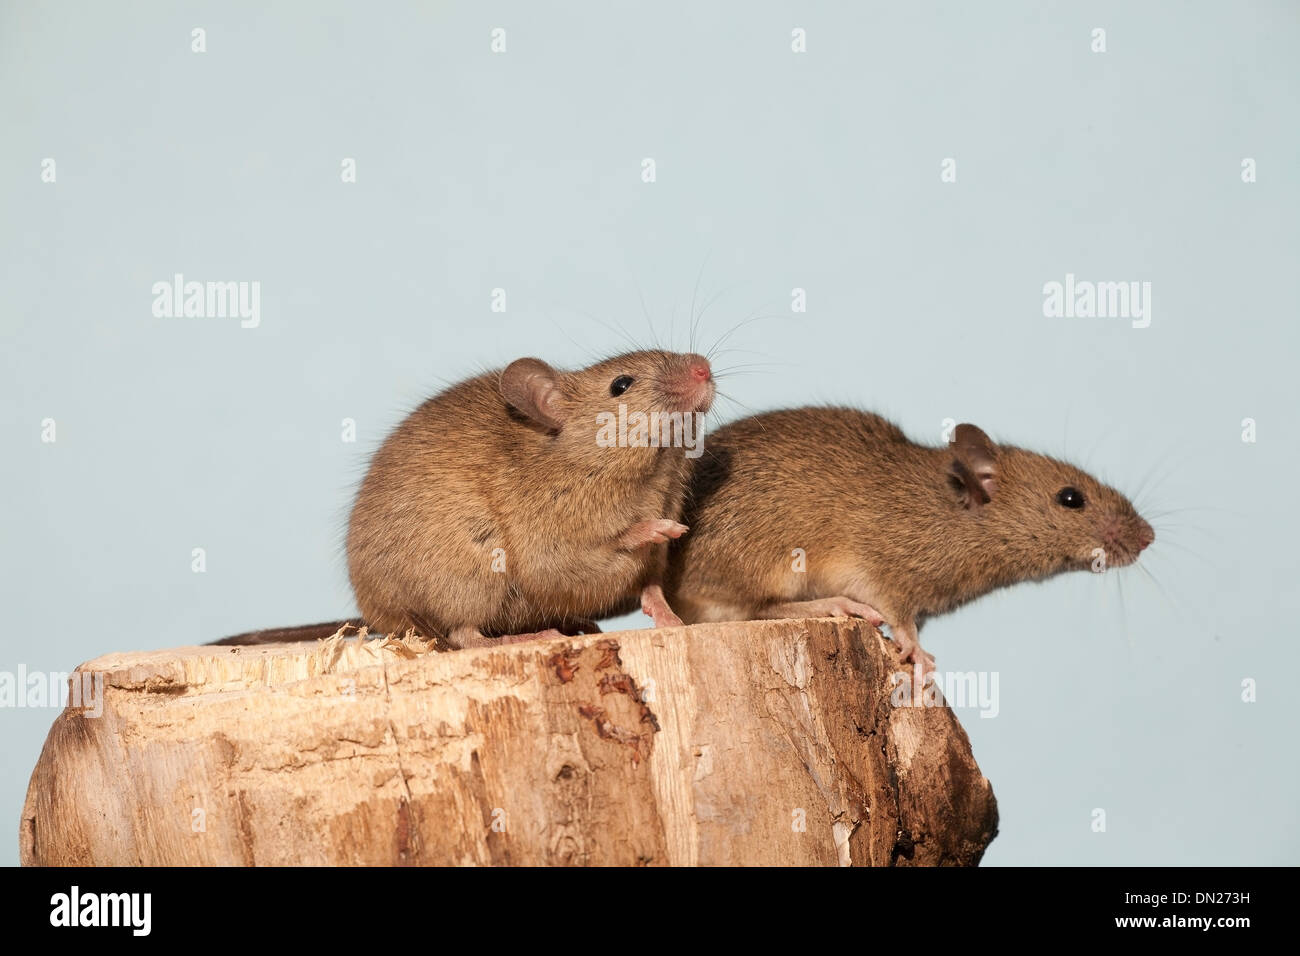 The house mouse (Mus musculus) - Stock Image